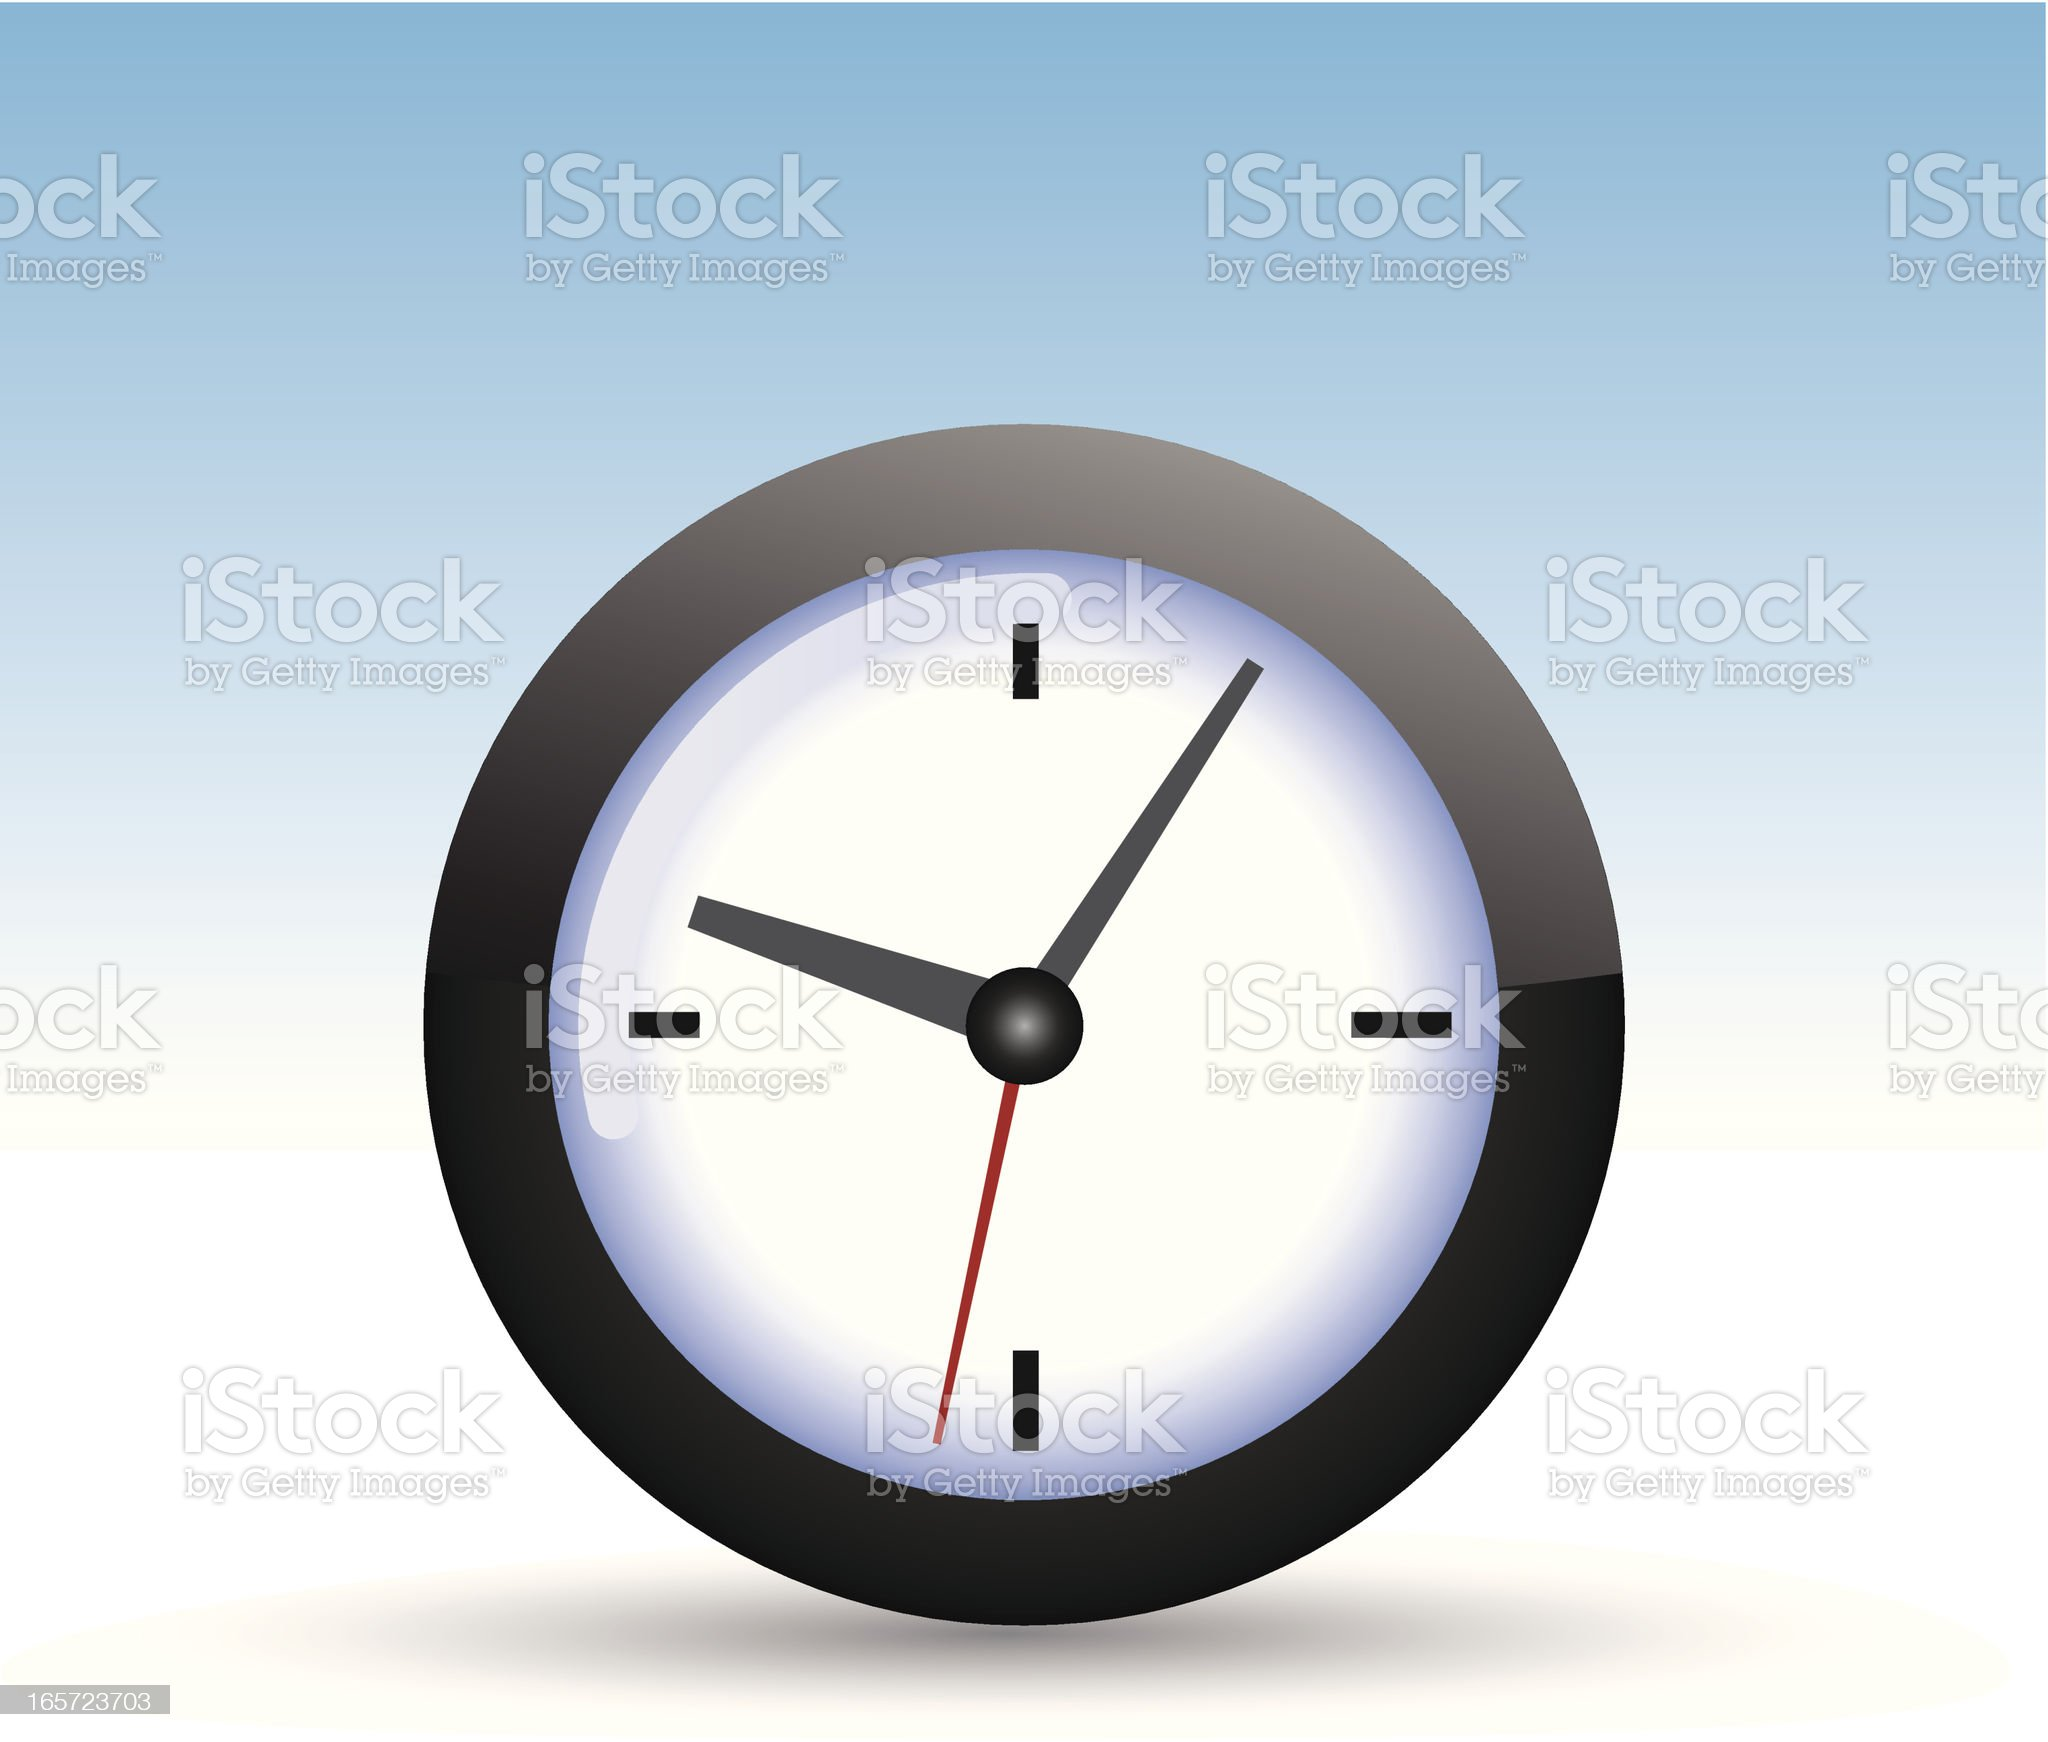 Clock Icon royalty-free stock vector art